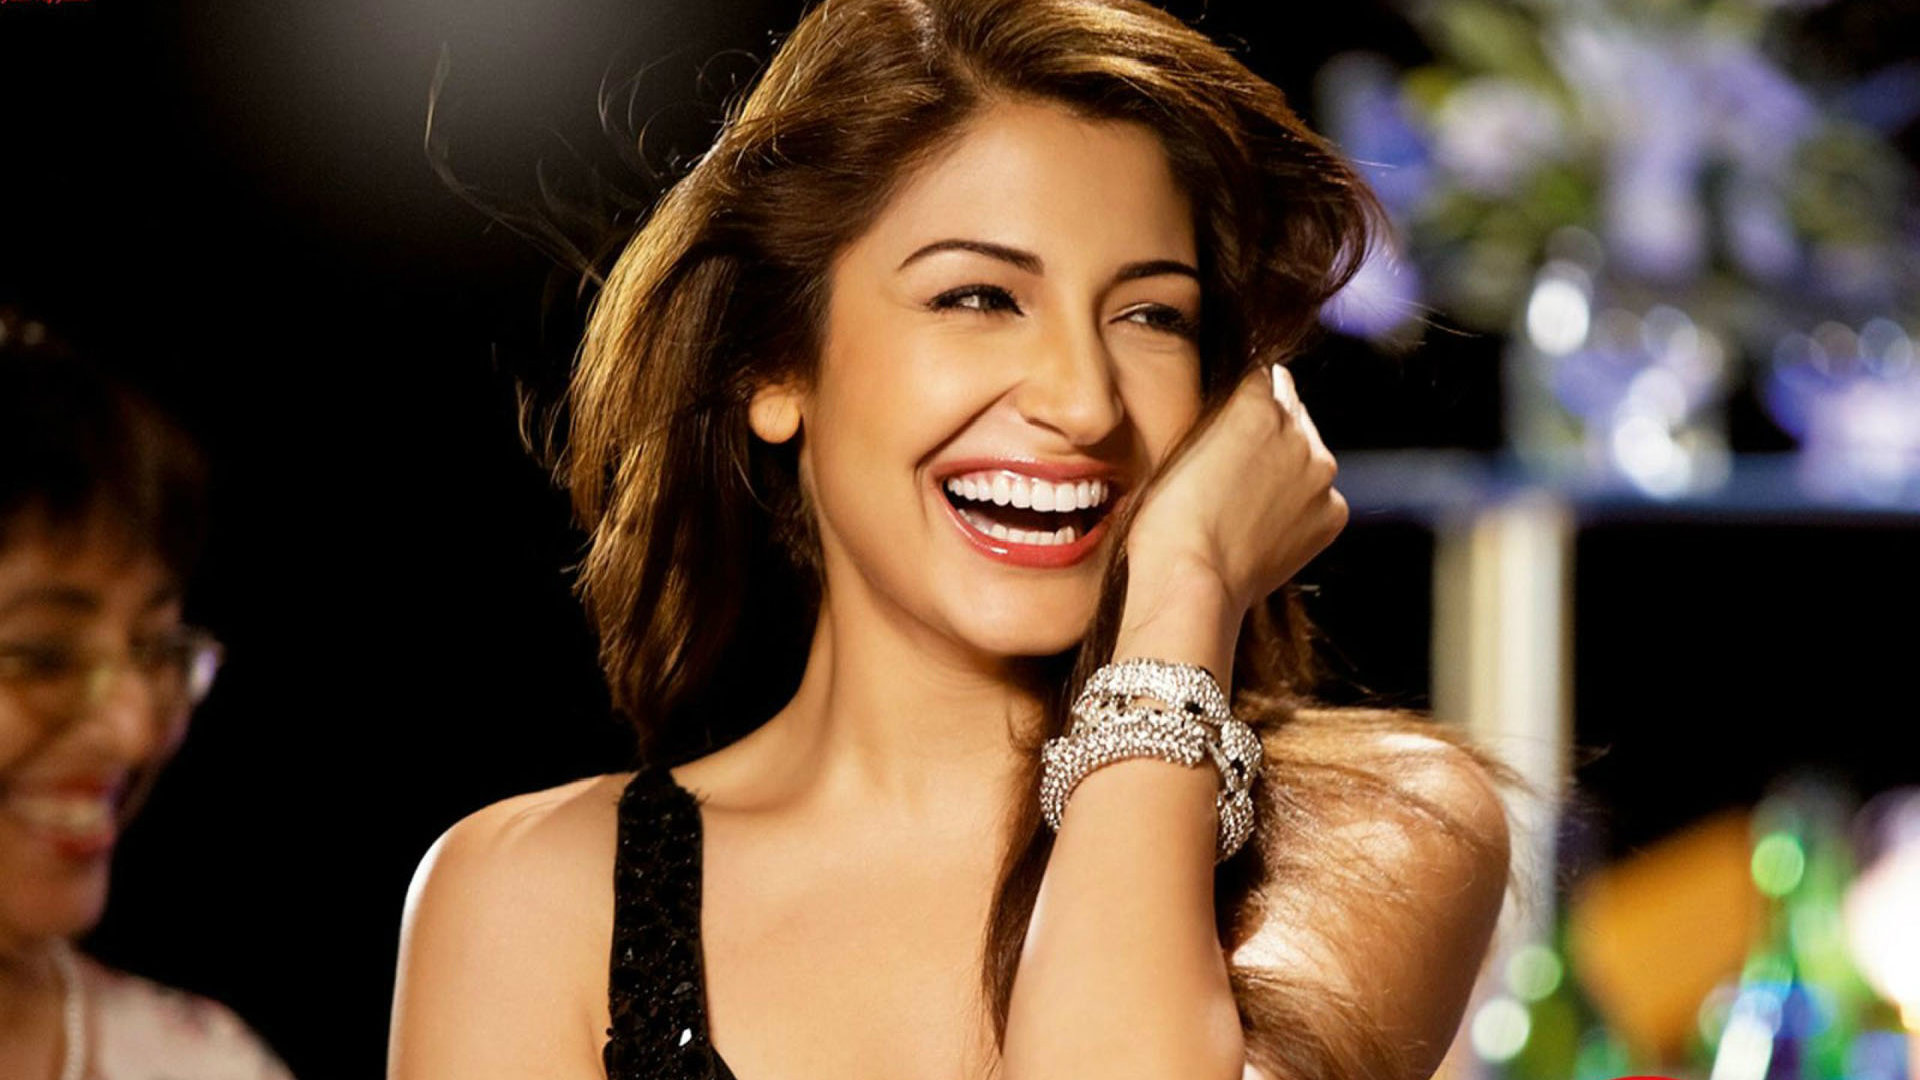 Anushka Sharma Hd, Hd Indian Celebrities, 4K Wallpapers, Images, Backgrounds, Photos -8274